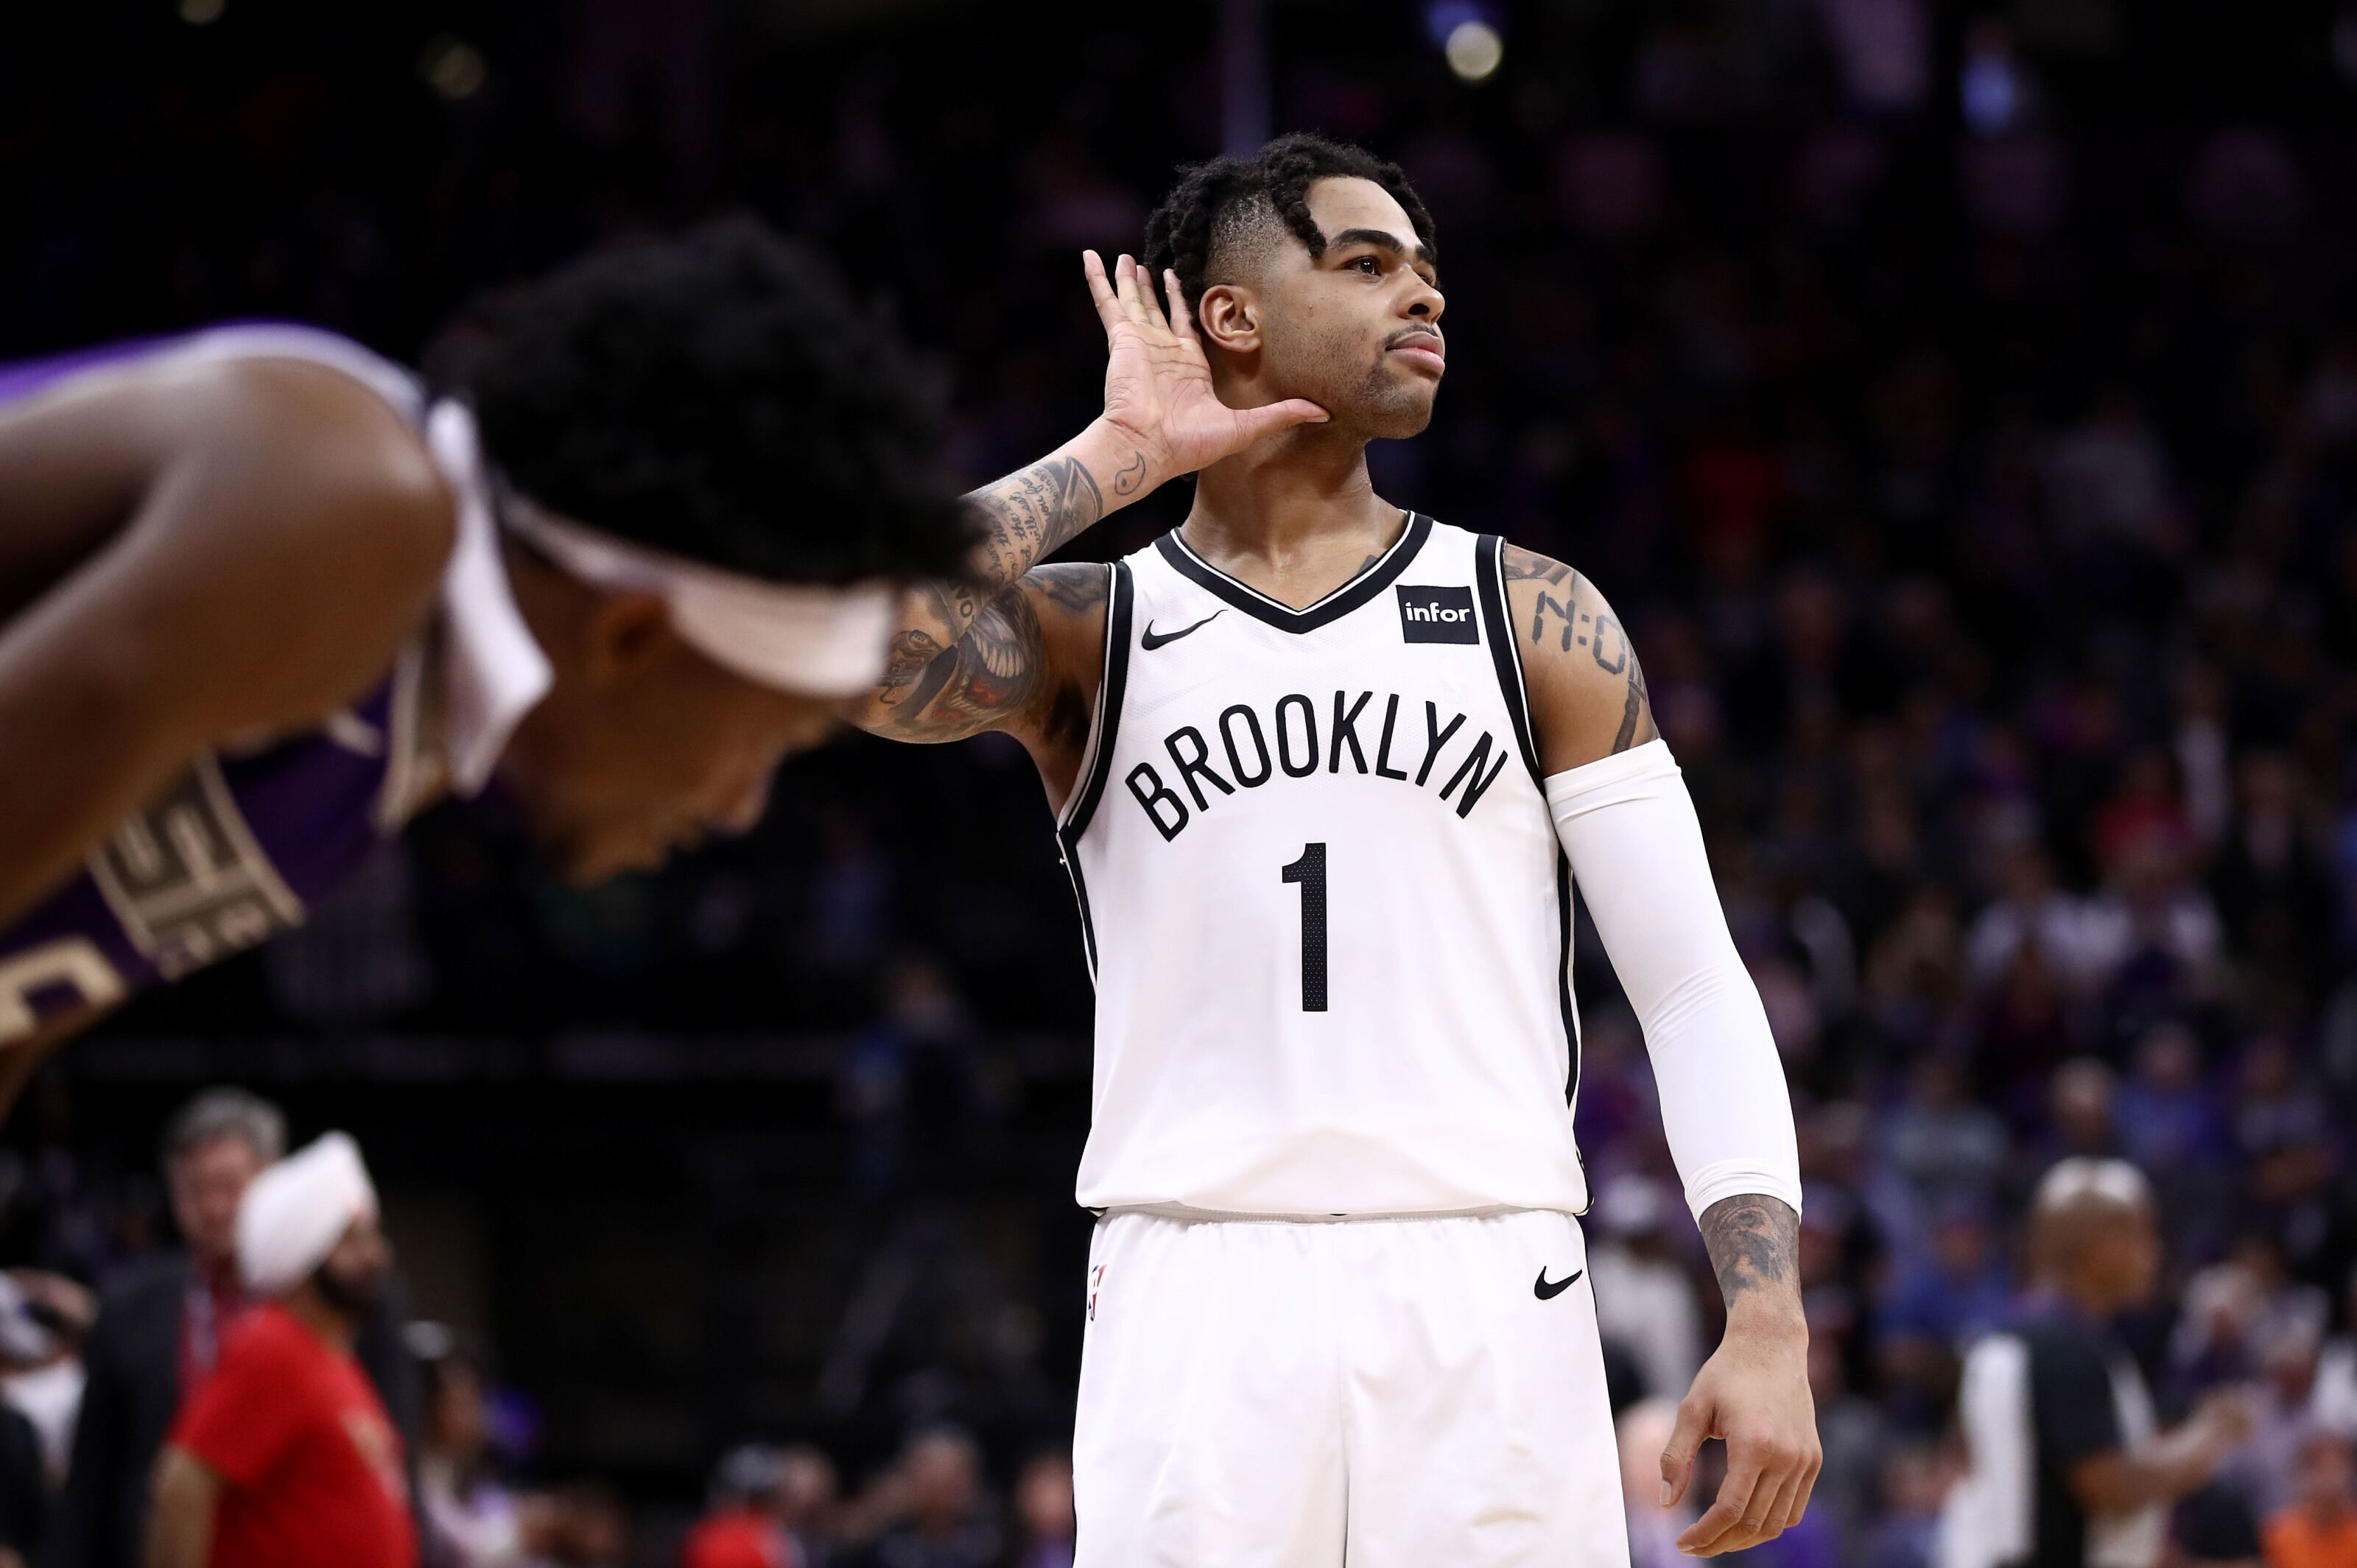 Brooklyn Nets: Legend of D'Angelo Russell gets a new chapter